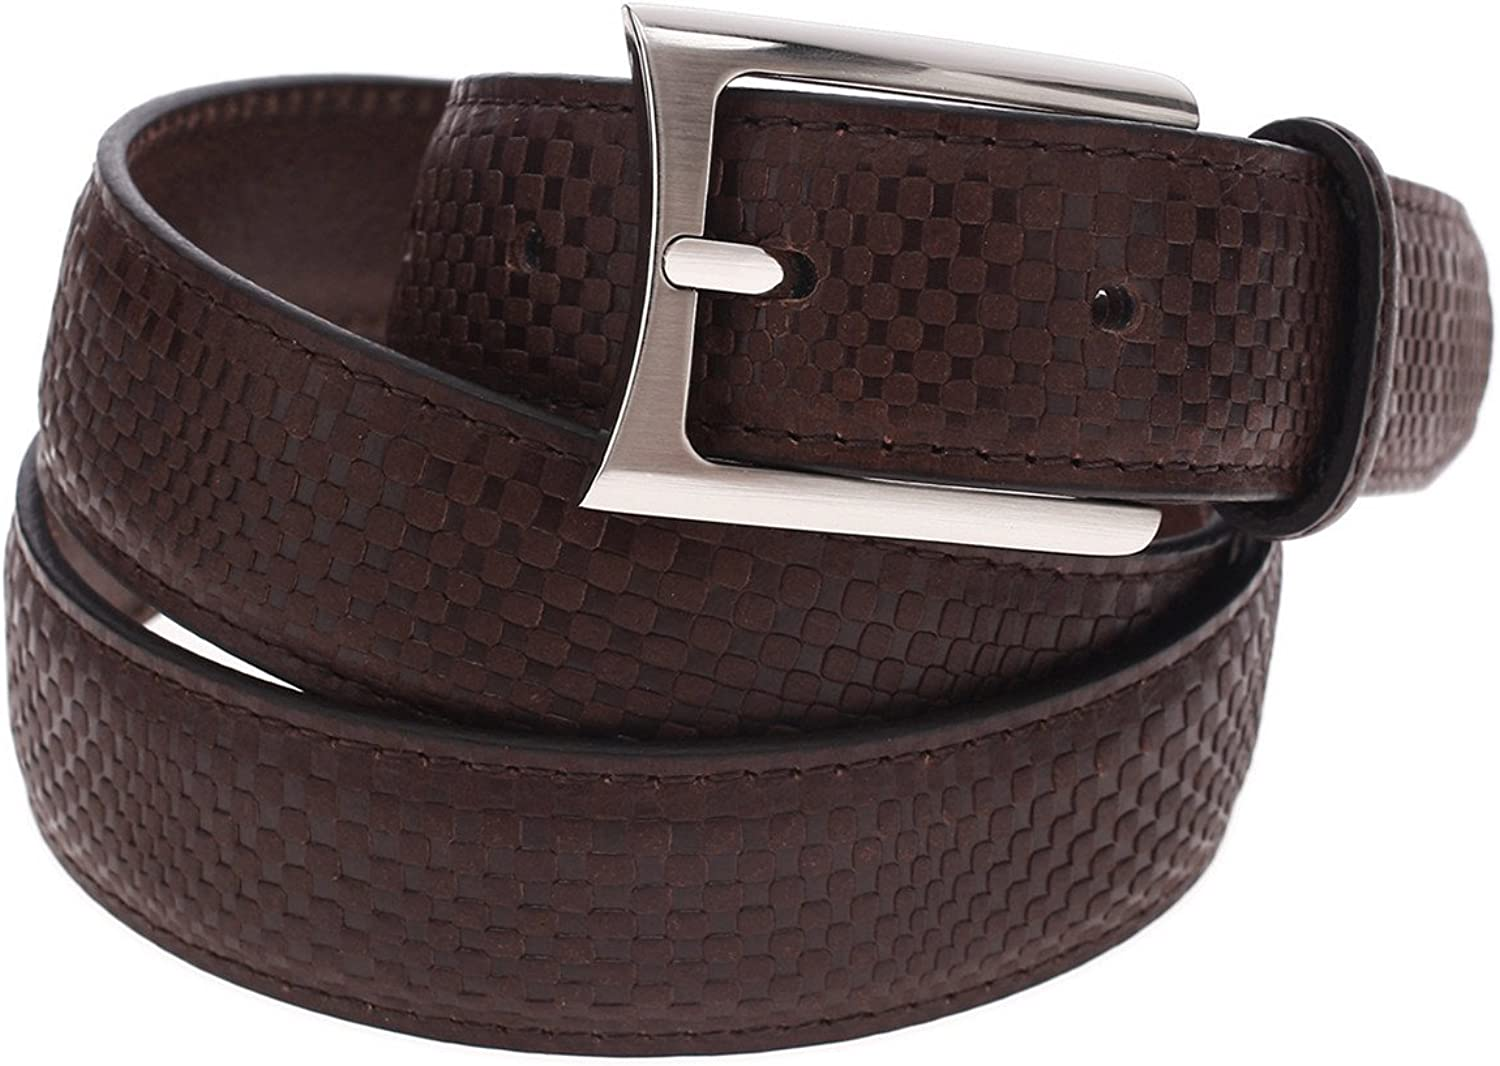 FLATSEVEN Mens Check Plaid Leather Belt with Square Buckle